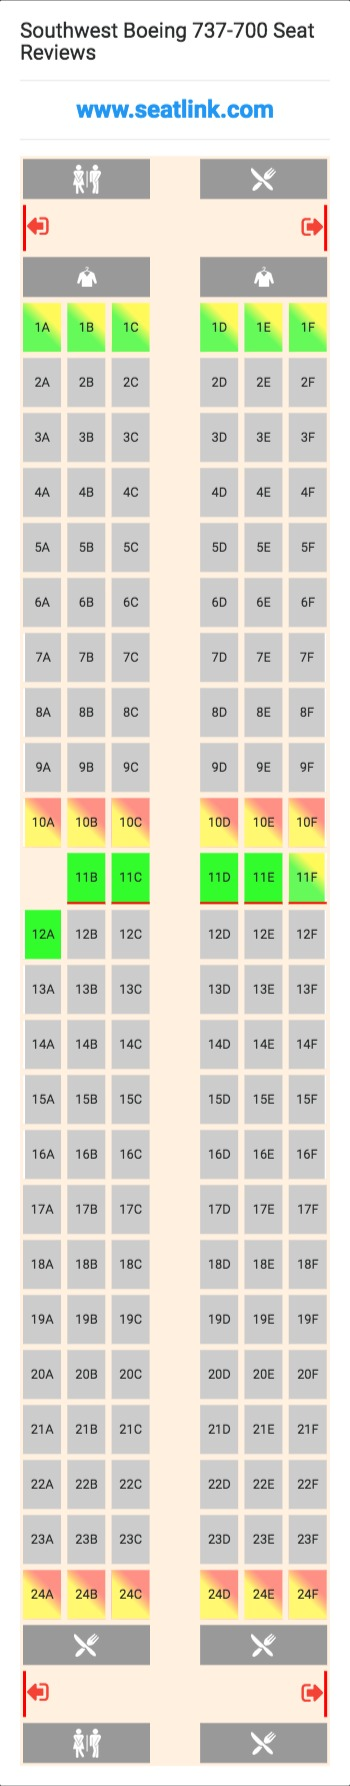 Southwest Boeing 737 700 Seating Chart Updated September 2019